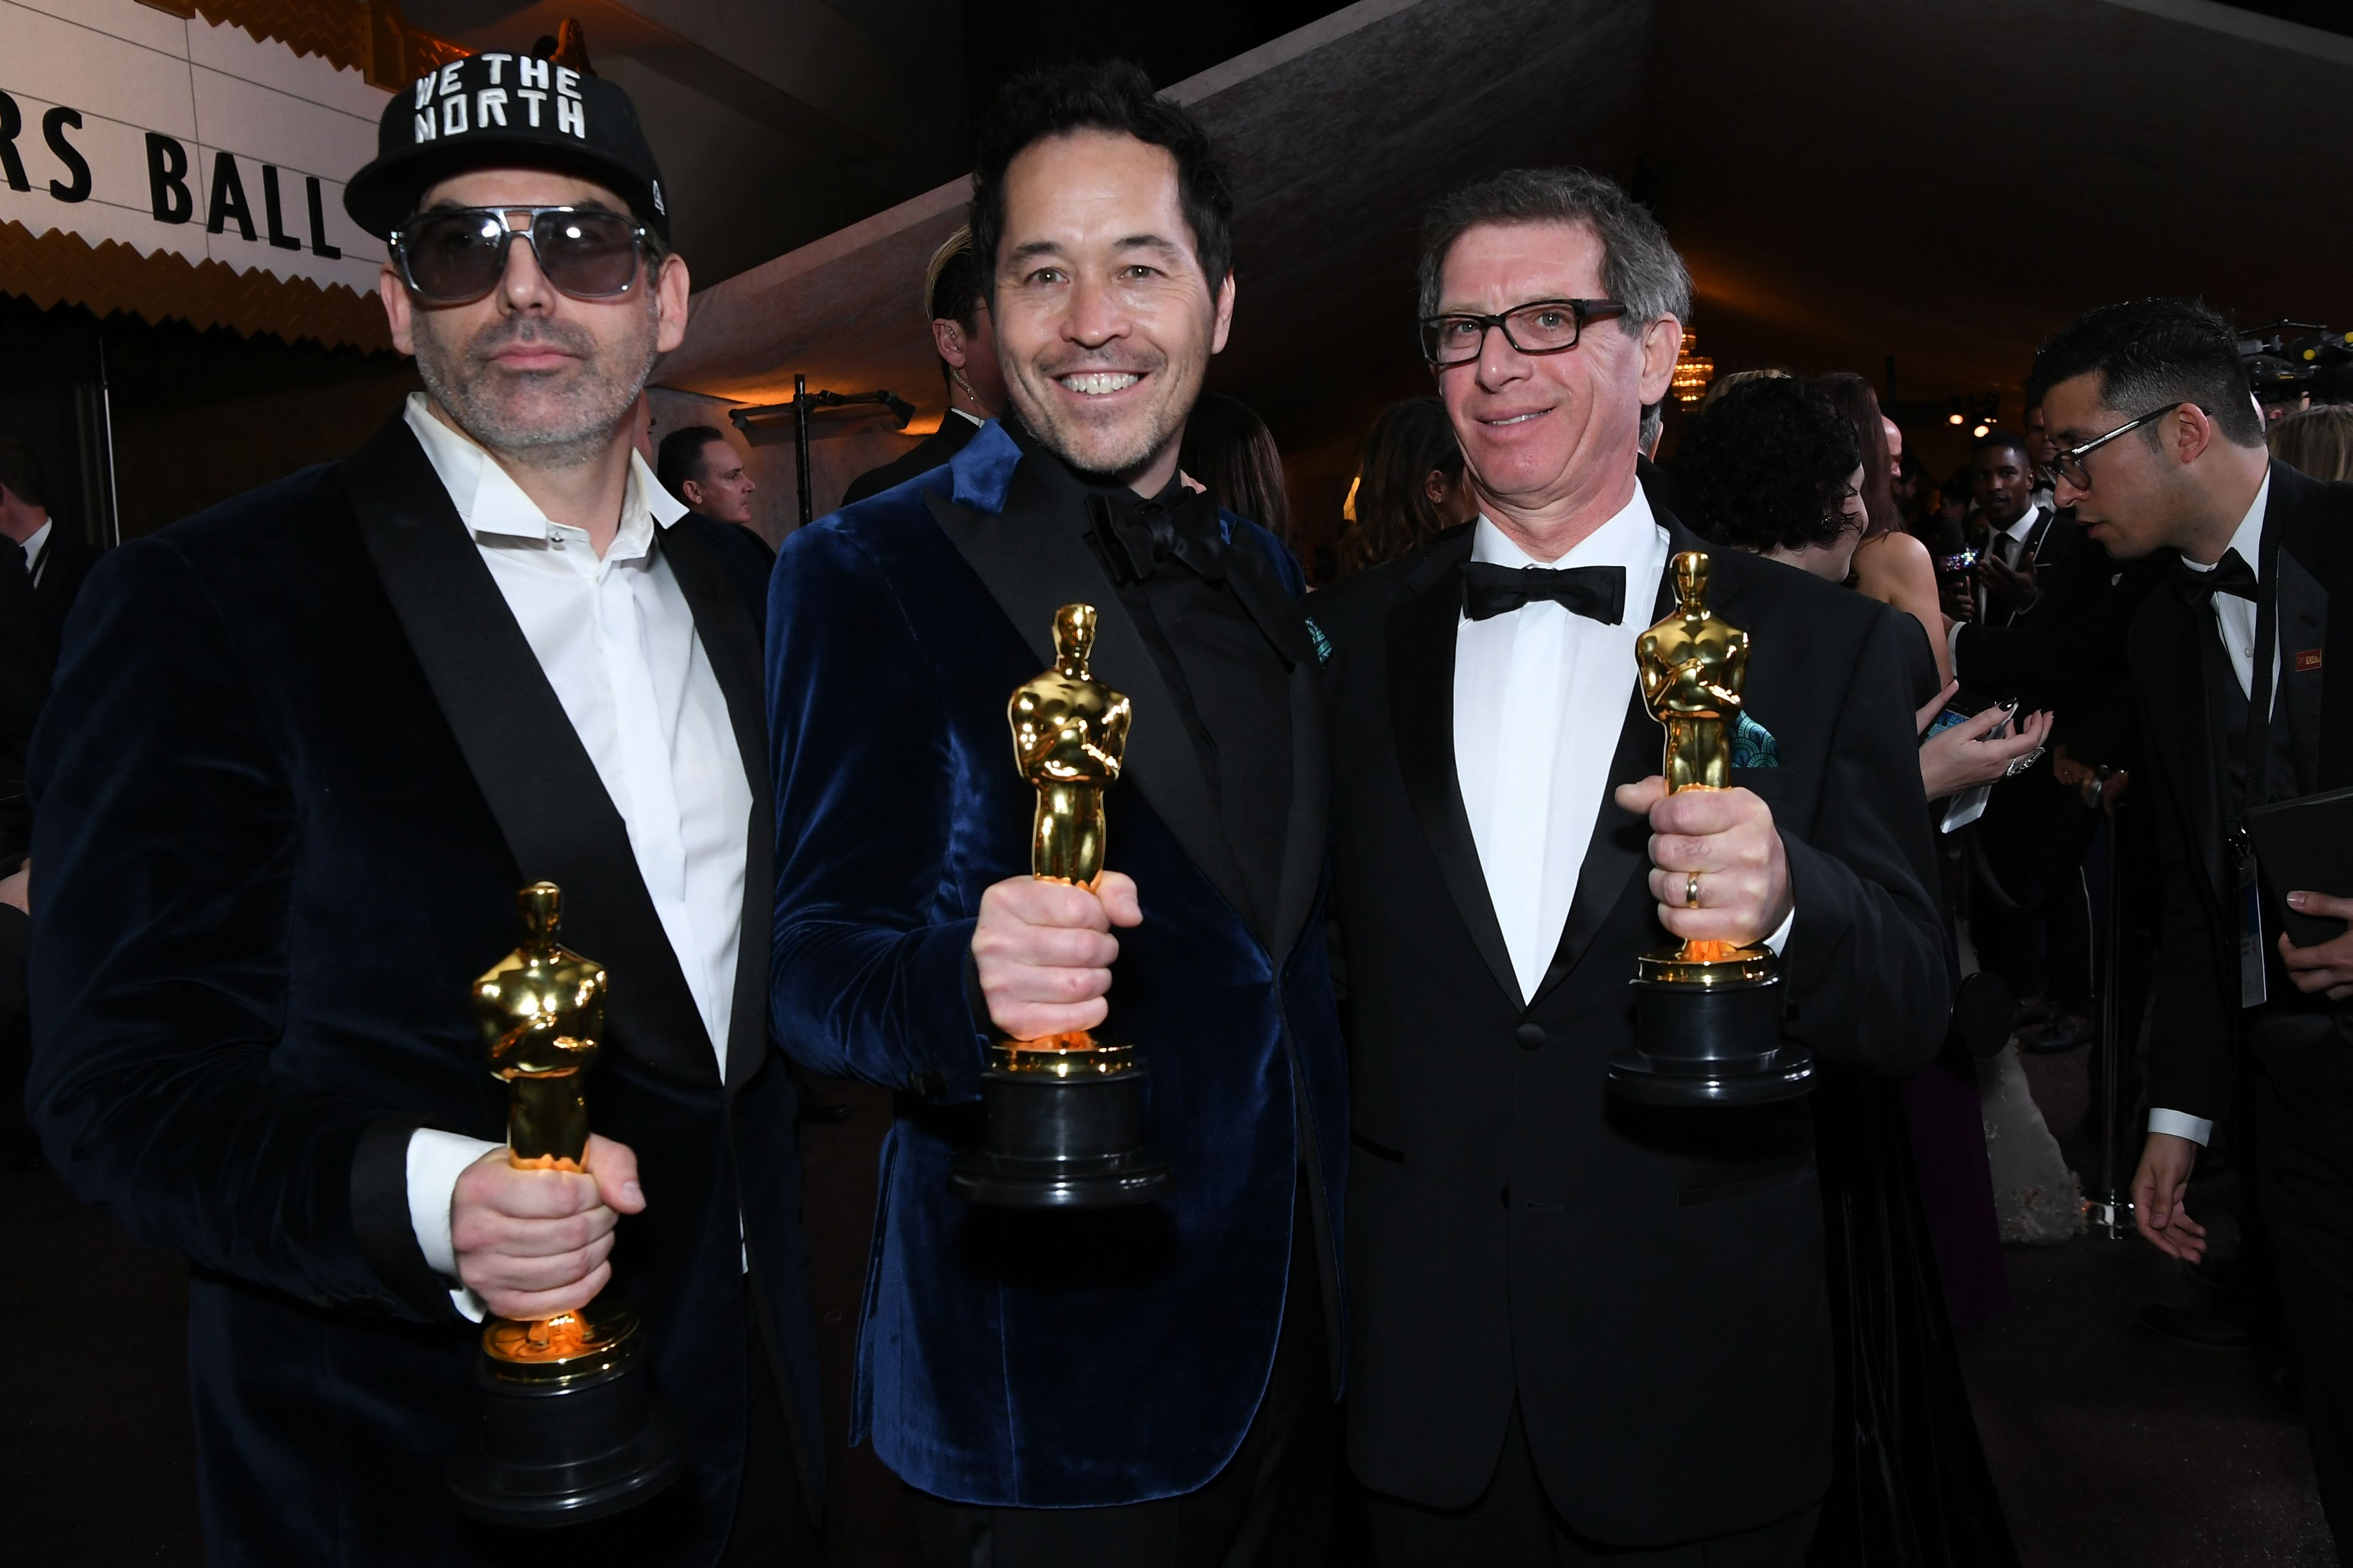 Best Production Design laureates, production designer Paul Denham Austerberry (C) and set decorators Shane Vieau (L) and Jeffrey A. Melvin attend the 90th Annual Academy Awards Governors Ball at the Hollywood & Highland Center on March 4, 2018, in Hollywood, Calif.